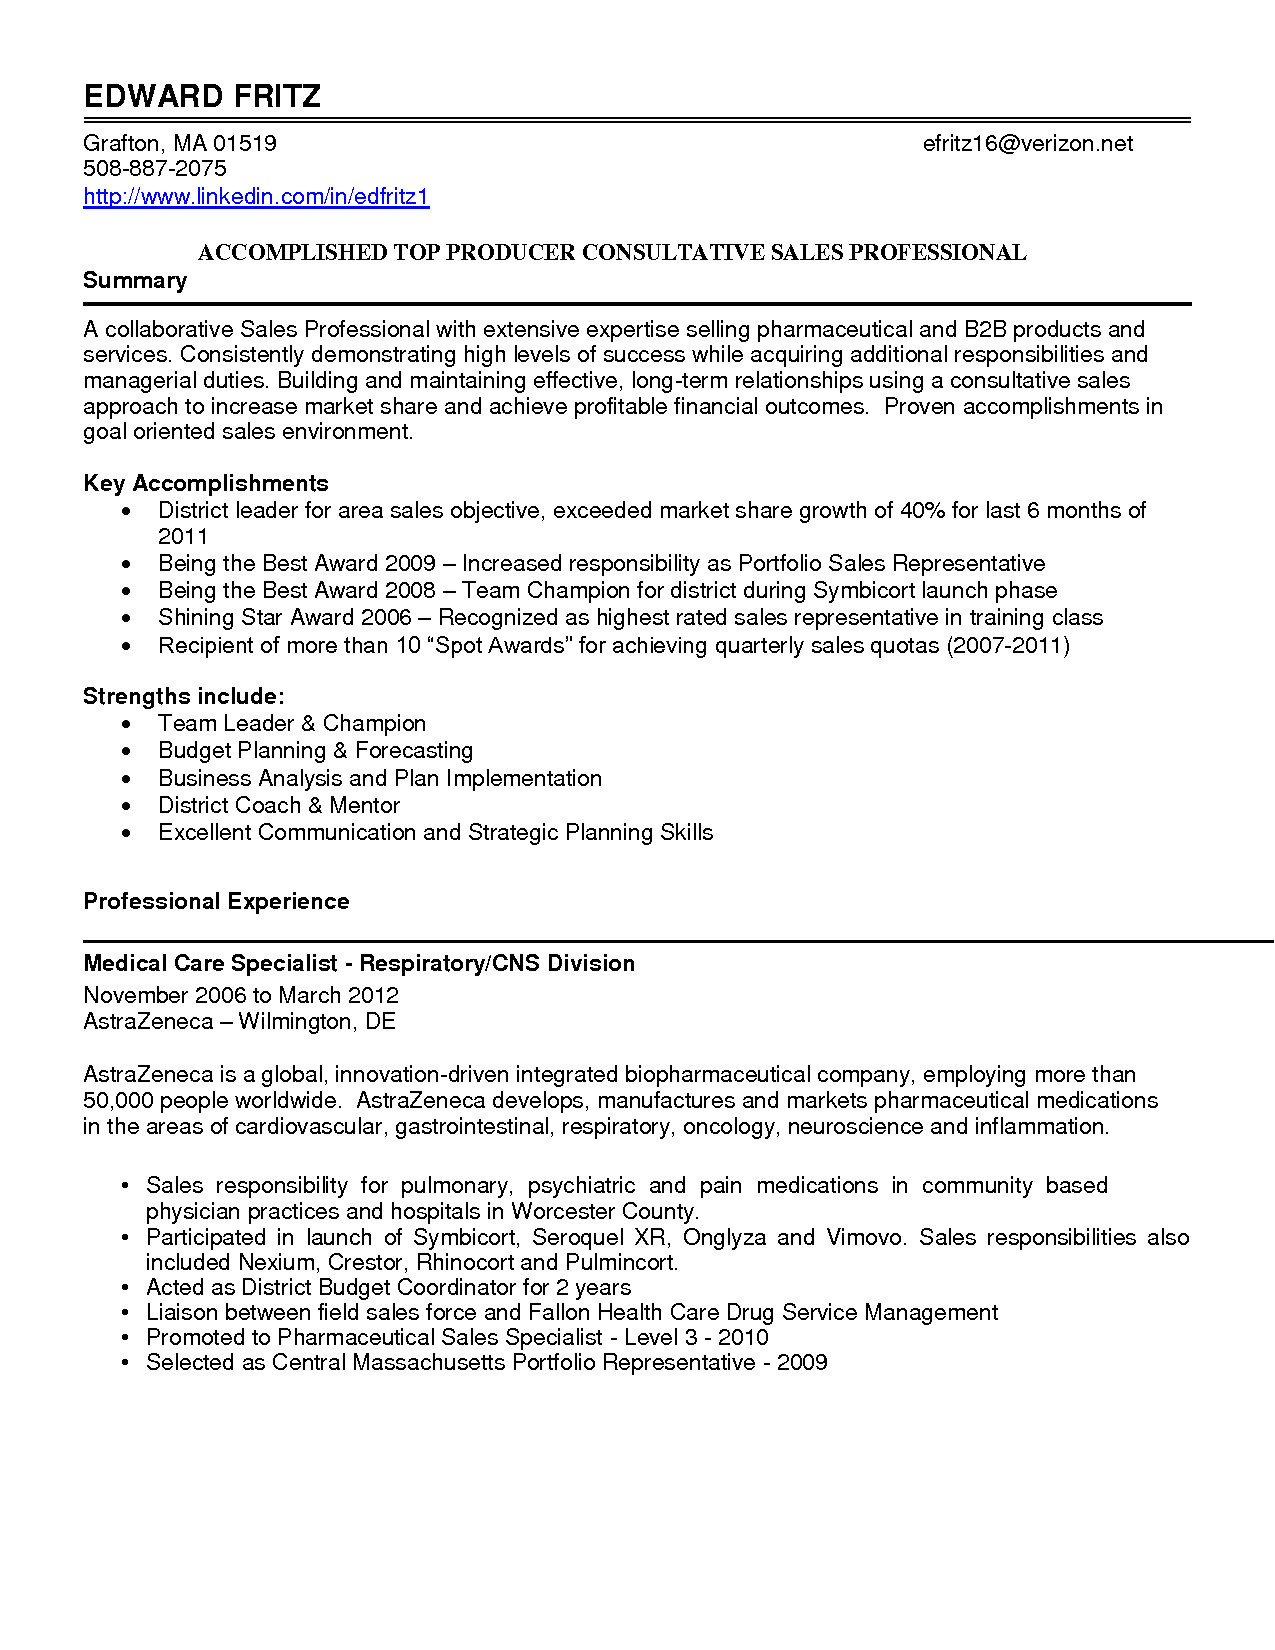 Bullet Points In A Cover Letter How to Write Any College Essay In Apa format Style Cover